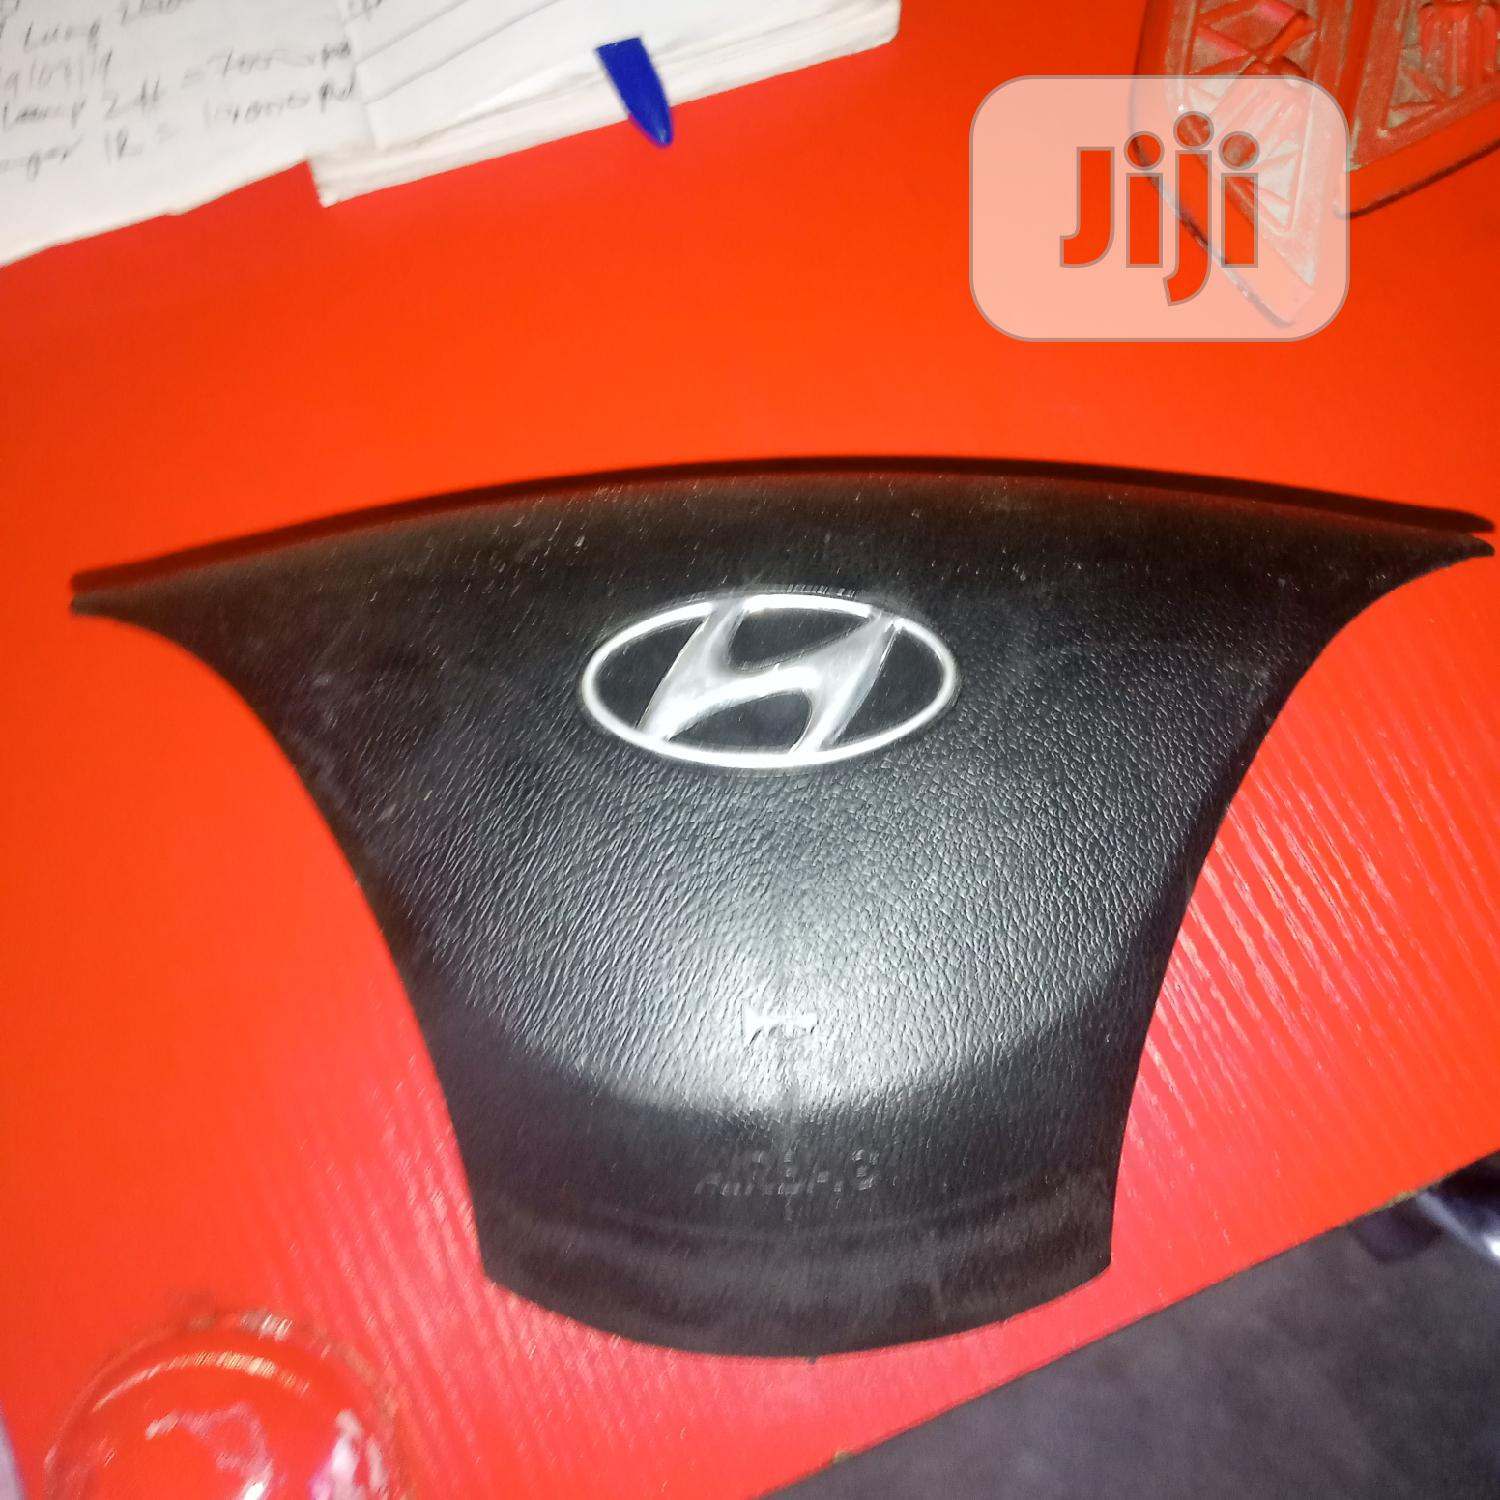 Hyundai Elentra 2014 Airbag | Vehicle Parts & Accessories for sale in Ogbia, Bayelsa State, Nigeria